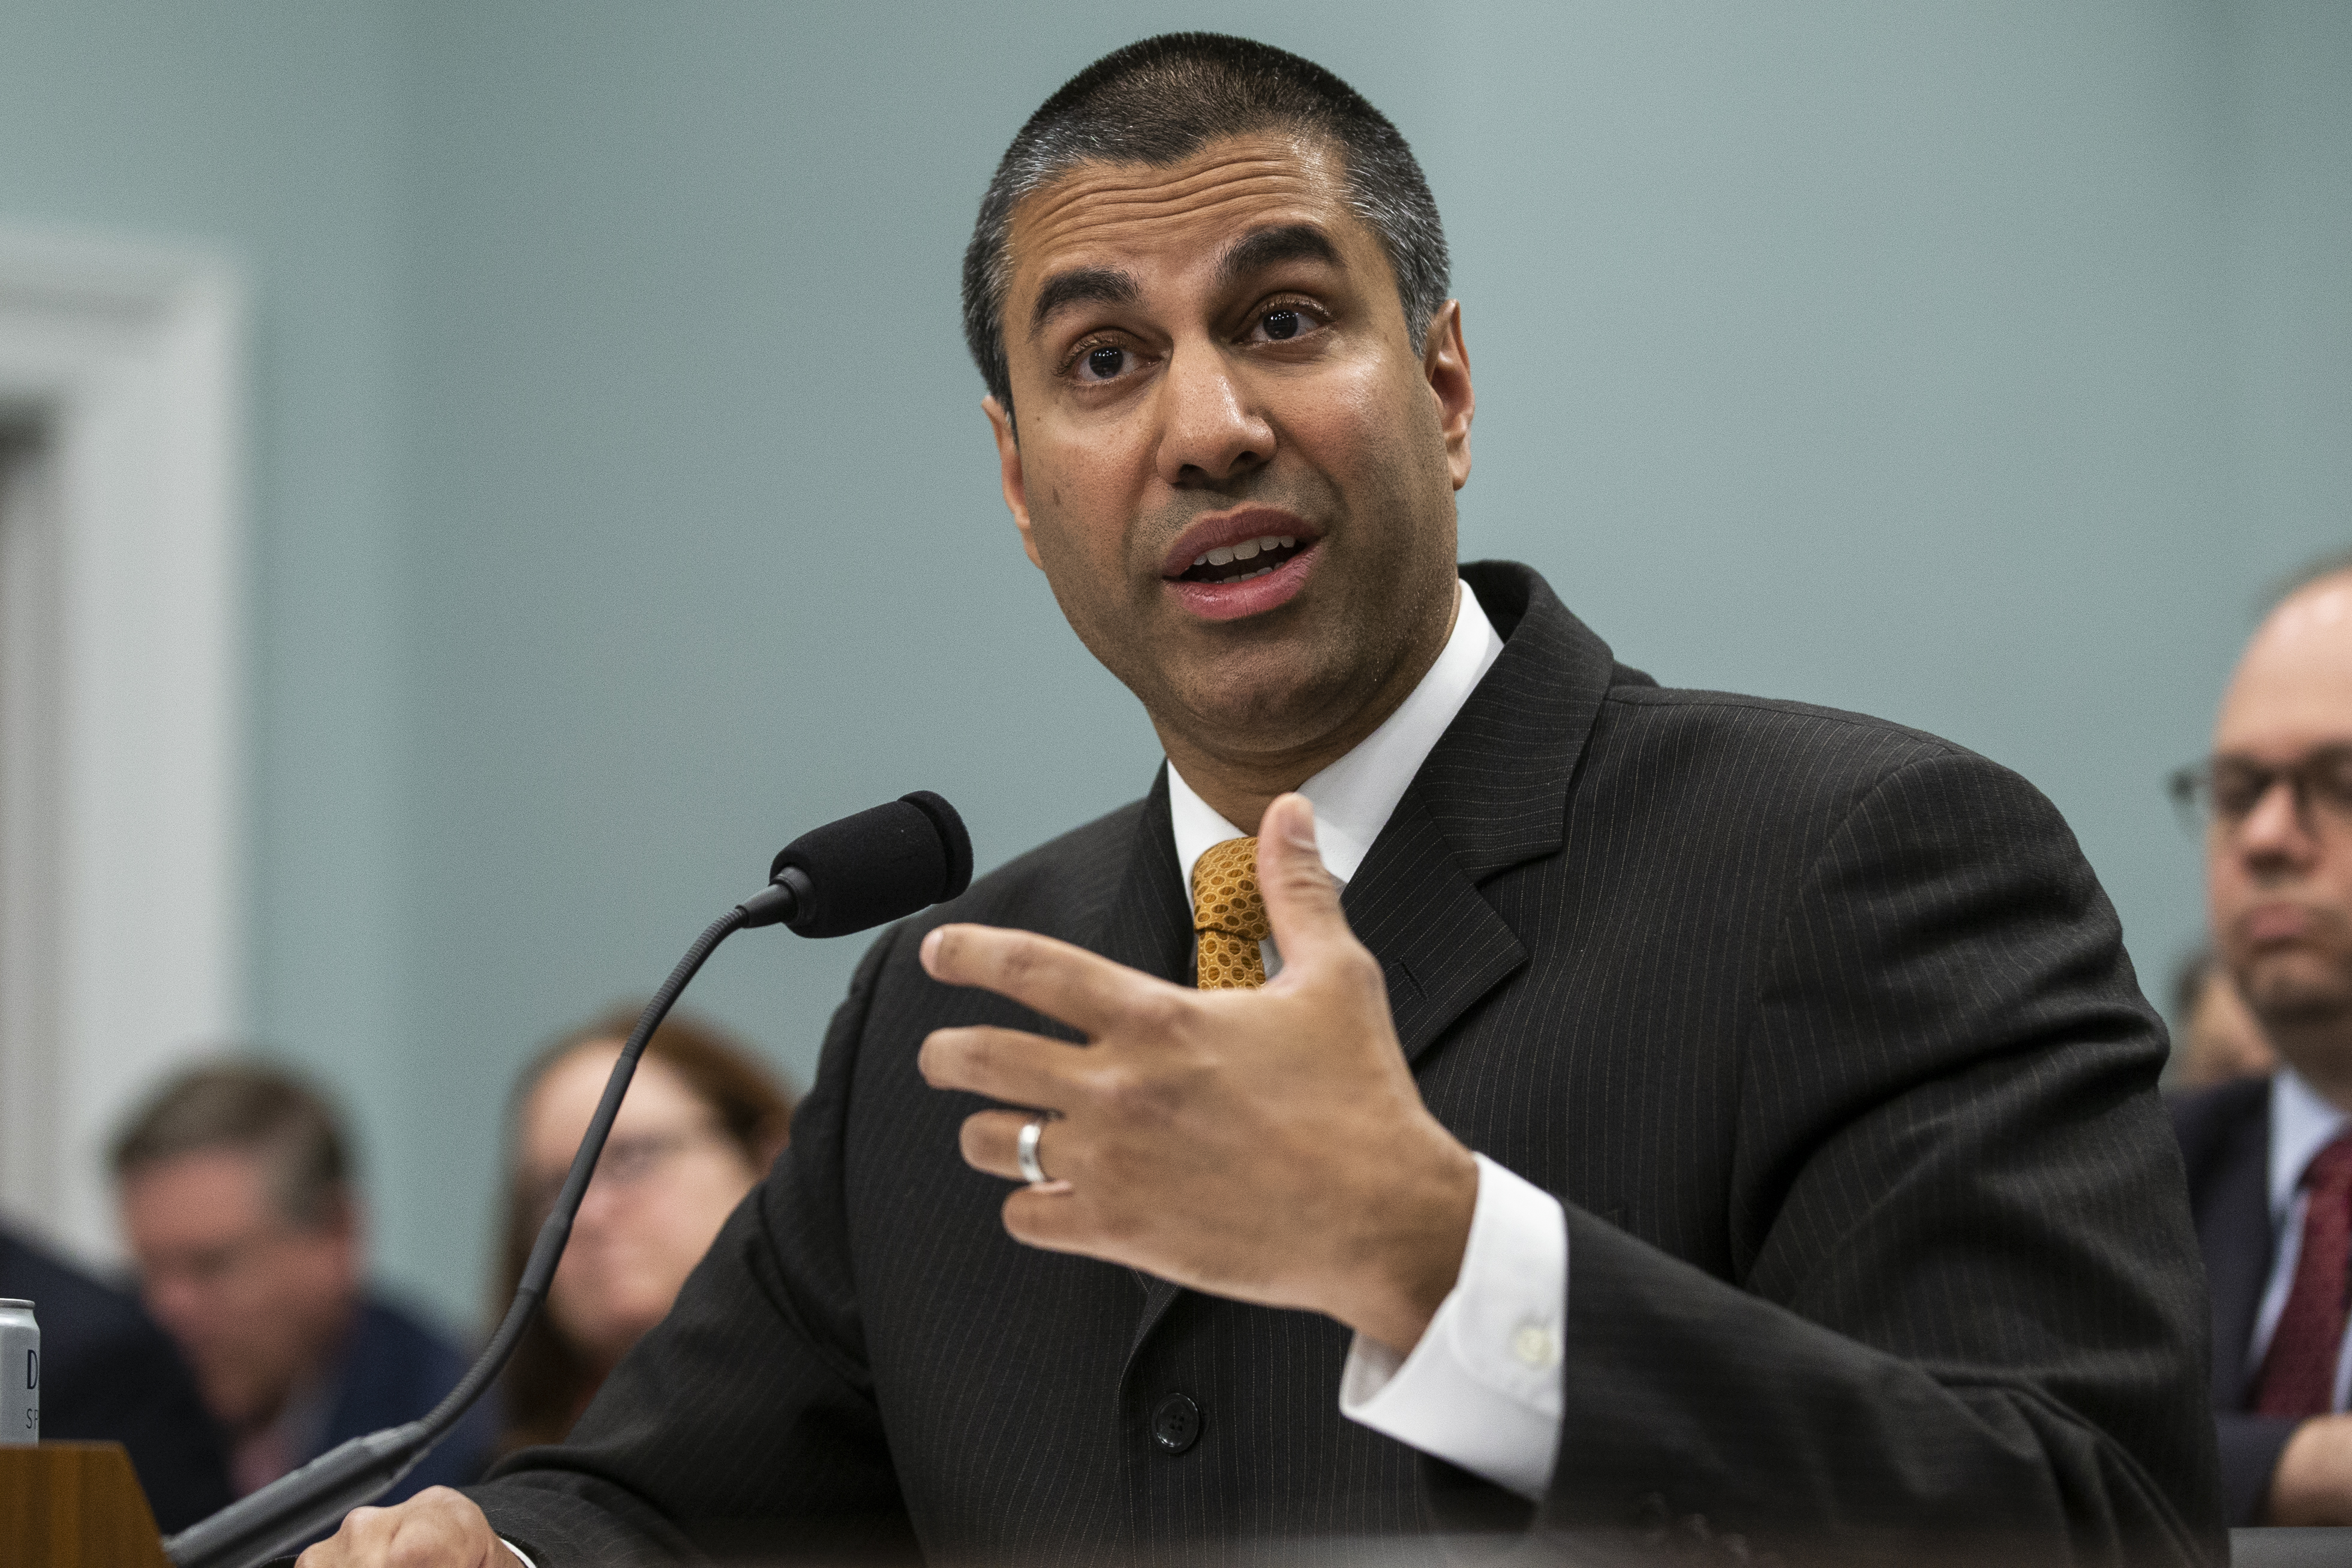 FCC Chairman Ajit Pai cancels trip to CES amid government shutdown